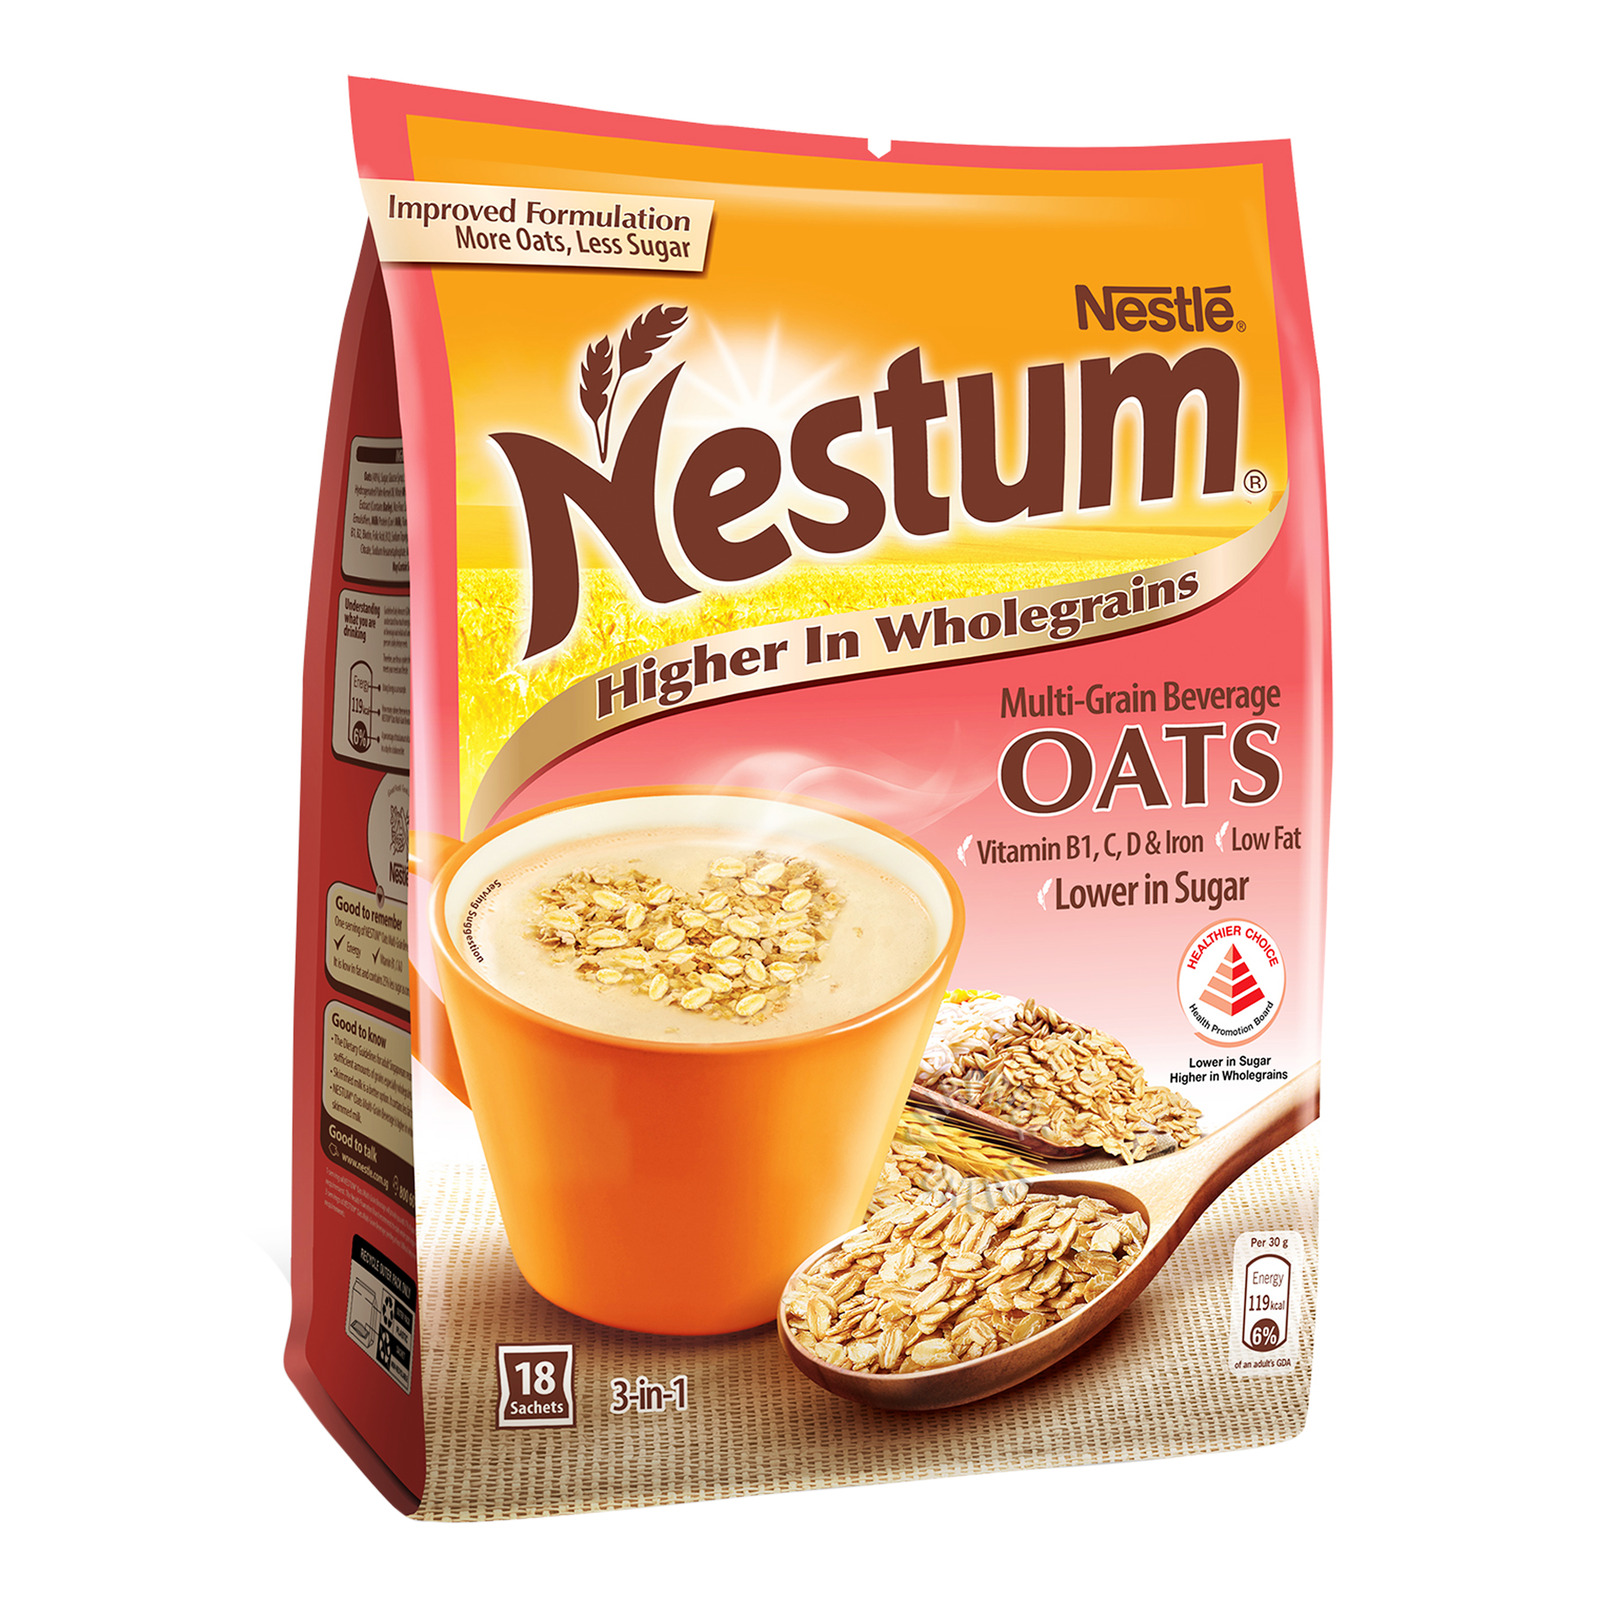 Nestle Nestum 3 in 1 Instant Cereal Milk Drink - Oats